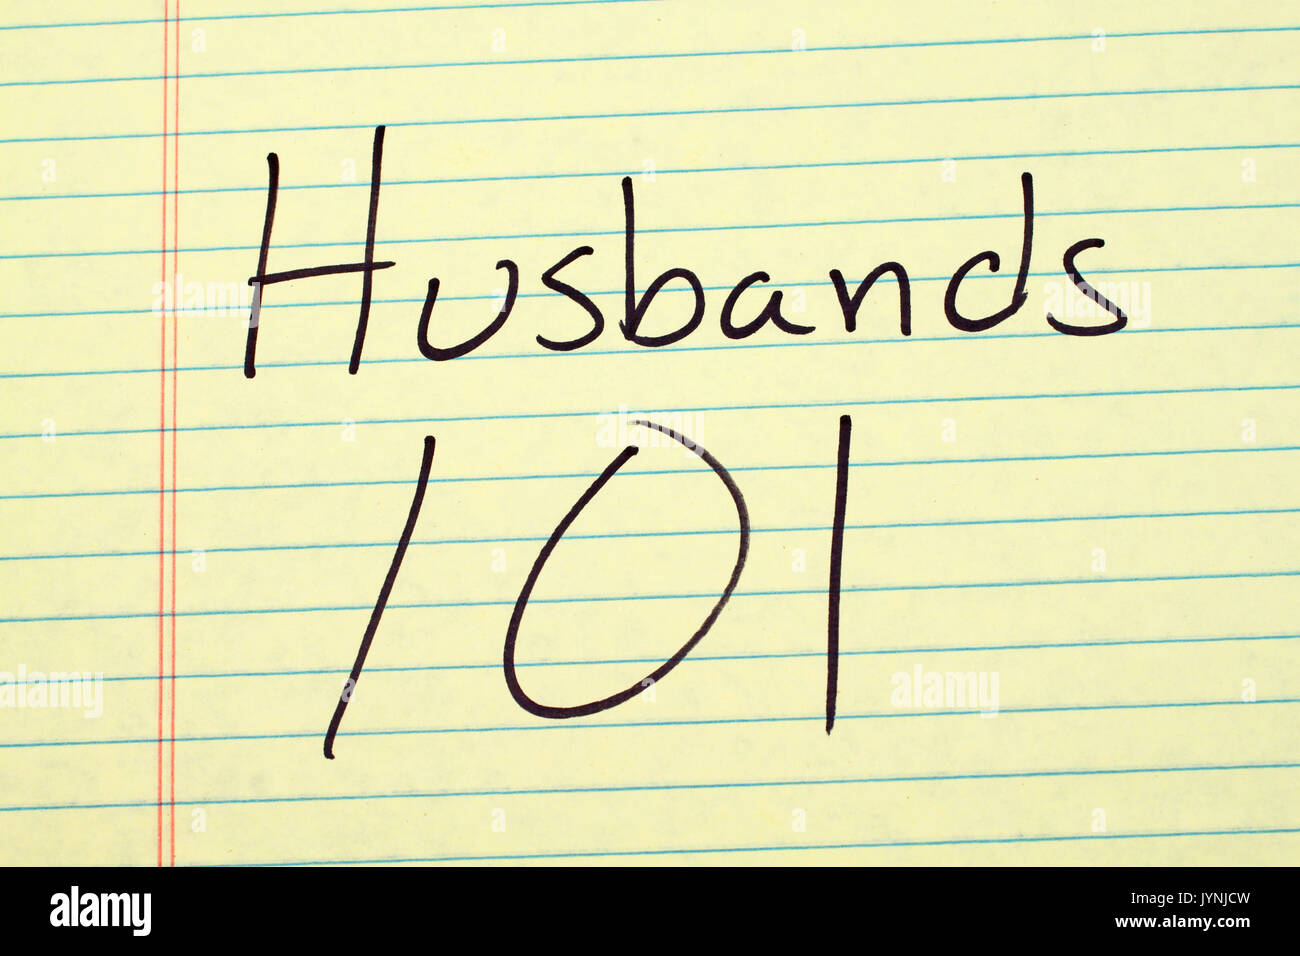 The words 'Husbands 101' on a yellow legal pad - Stock Image